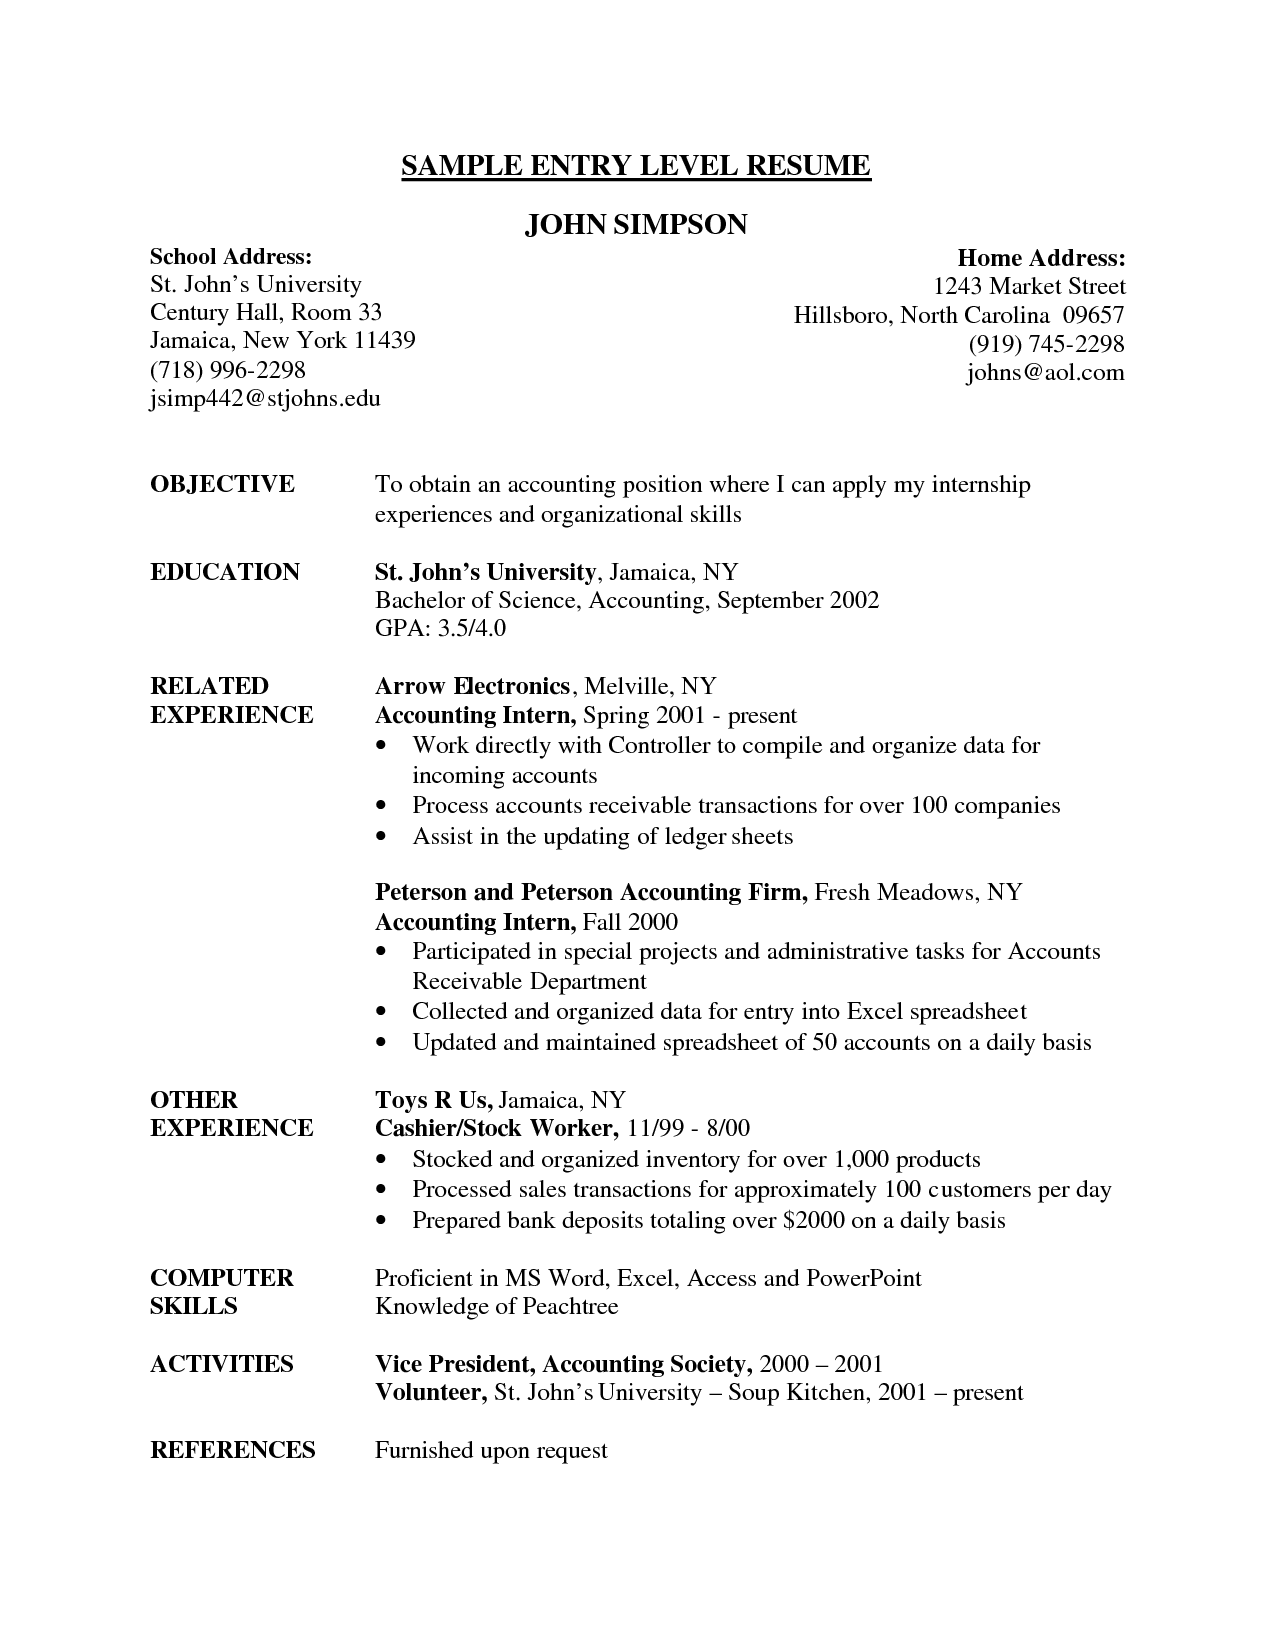 Teaching Resume Samples Entry Level Free Entry Level Resumes Samplebusinessresume